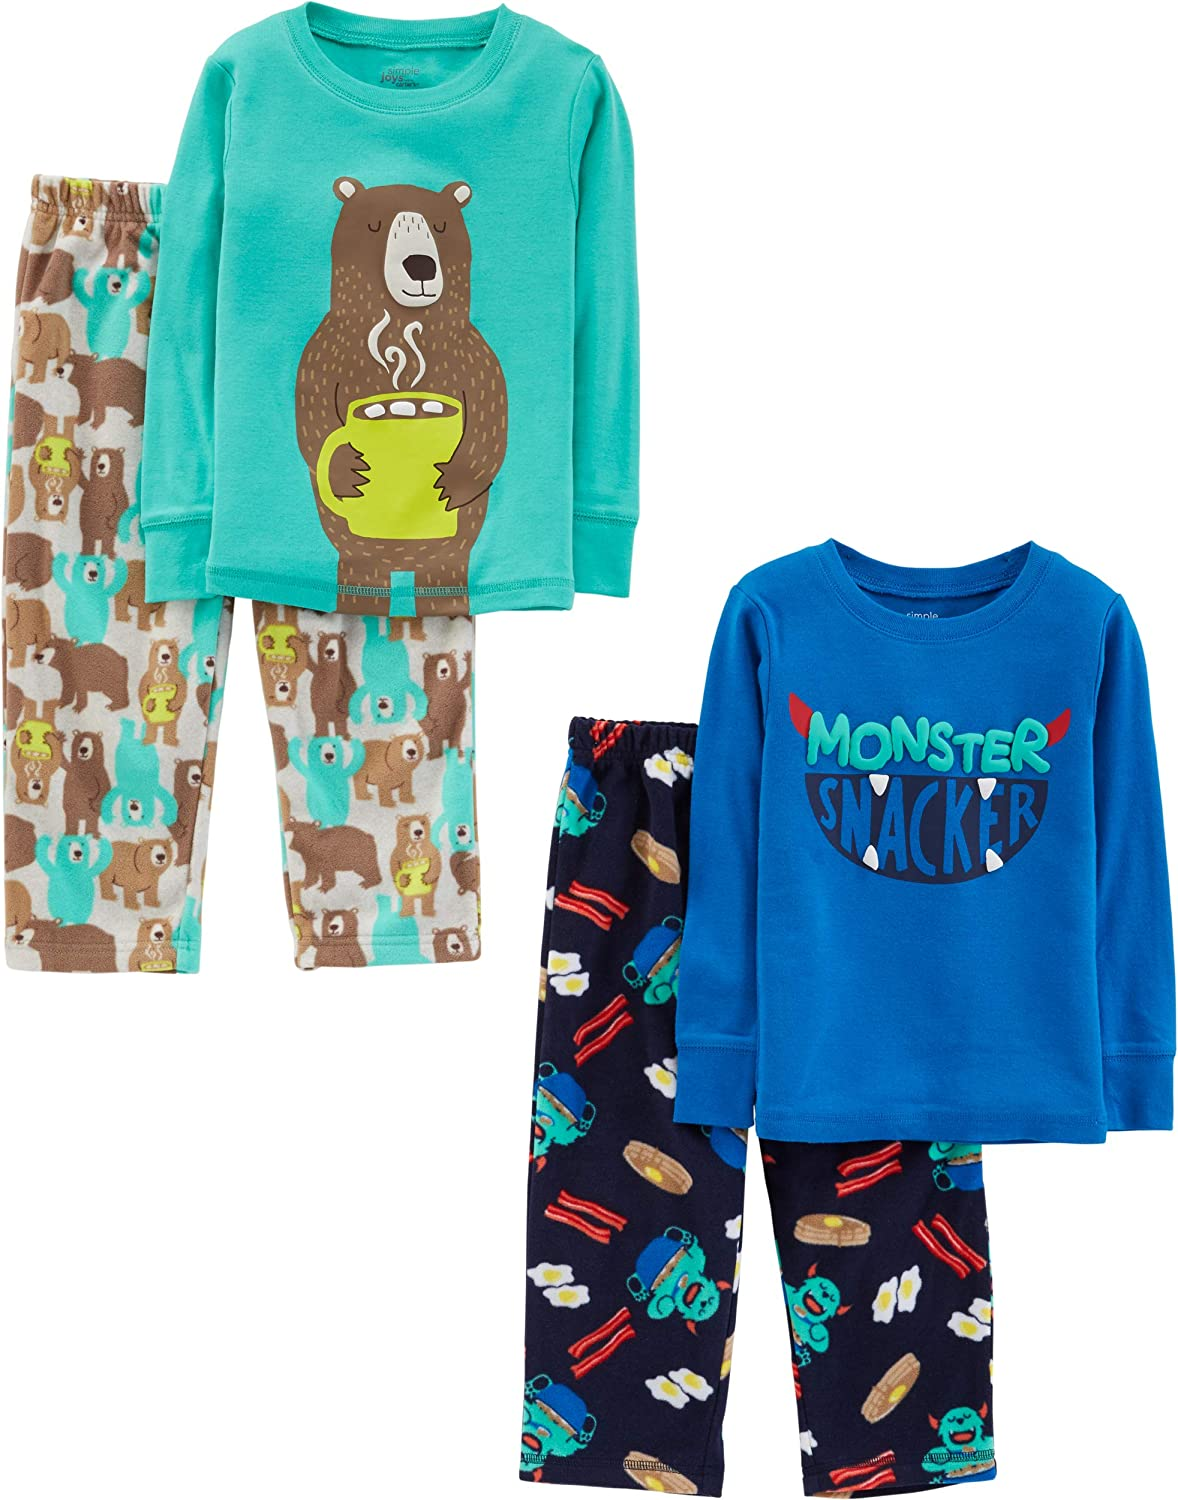 Simple Joys by Carters Little Kid and Toddler Boys 4-Piece Pajama Set